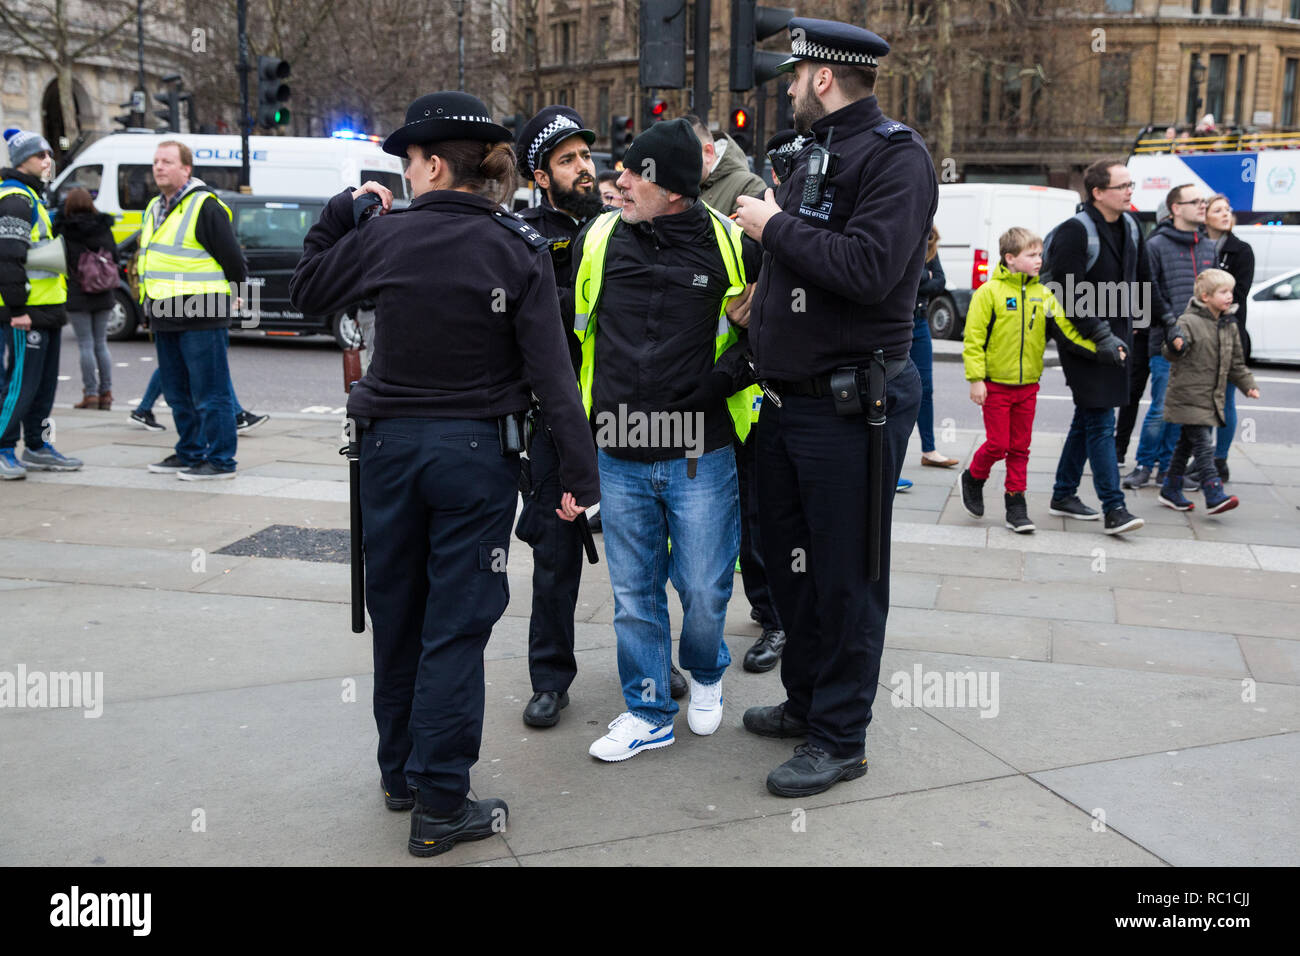 London, UK. 12th January, 2019. Police officers hold a man as they keep order between around fifty supporters of far-right group Liberty Defenders and hundreds of protesters taking part in a 'Britain is Broken: General Election Now' demonstration organised by the People's Assembly Against Austerity. Some members of both groups were wearing yellow vests in solidarity with the 'gilets jaunes' in France. Credit: Mark Kerrison/Alamy Live News - Stock Image